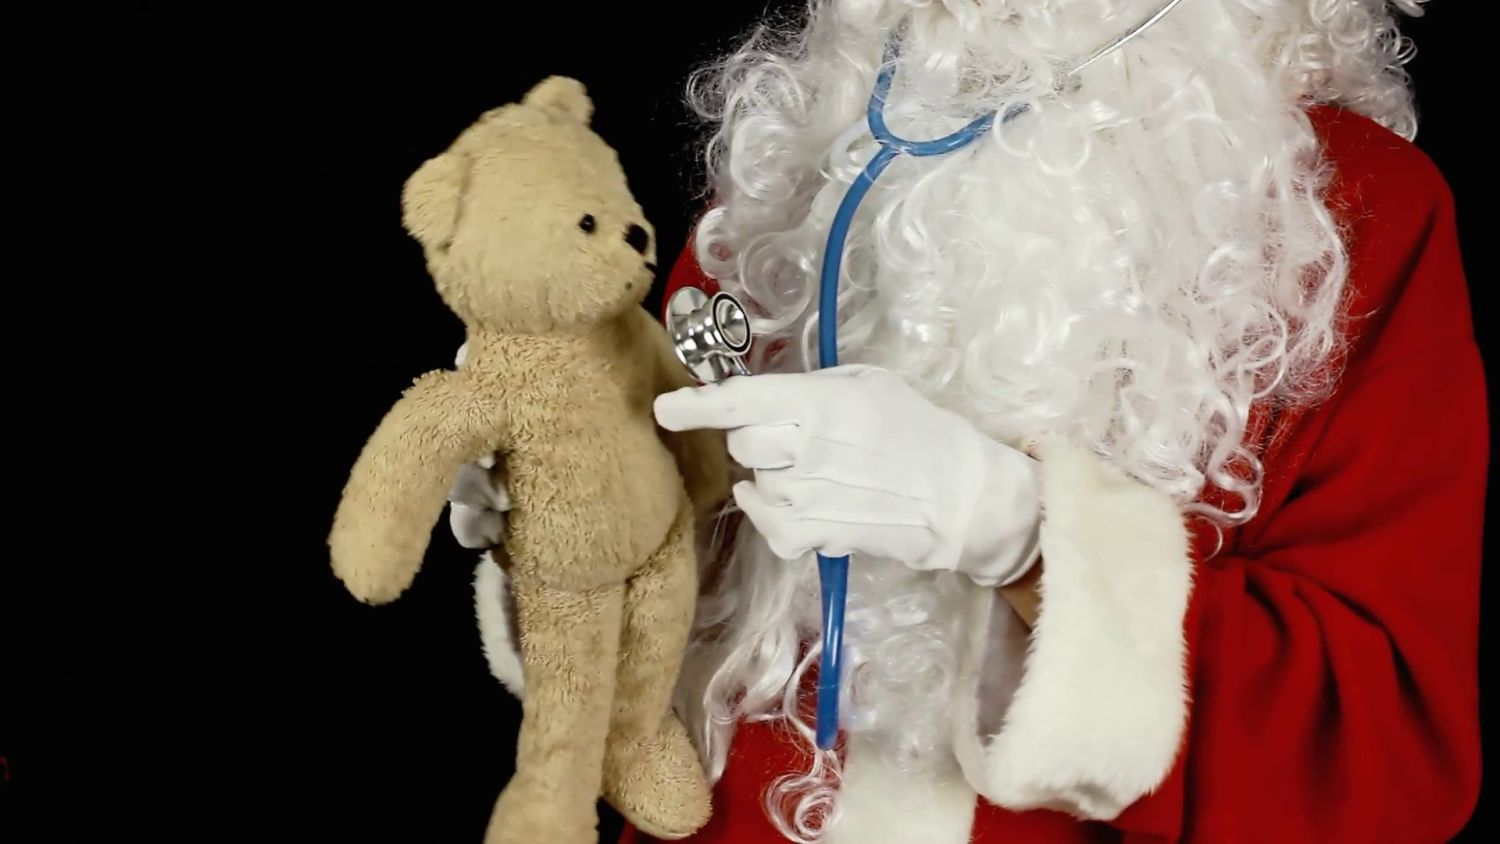 santa-claus-teddy-bear-doctor-santa-claus-acting-as-a-doctor-curing-a-sick-teddy-bear-listening-to-a-bad-cough-with-a-stethoscope_eyujrvkqx__F0000